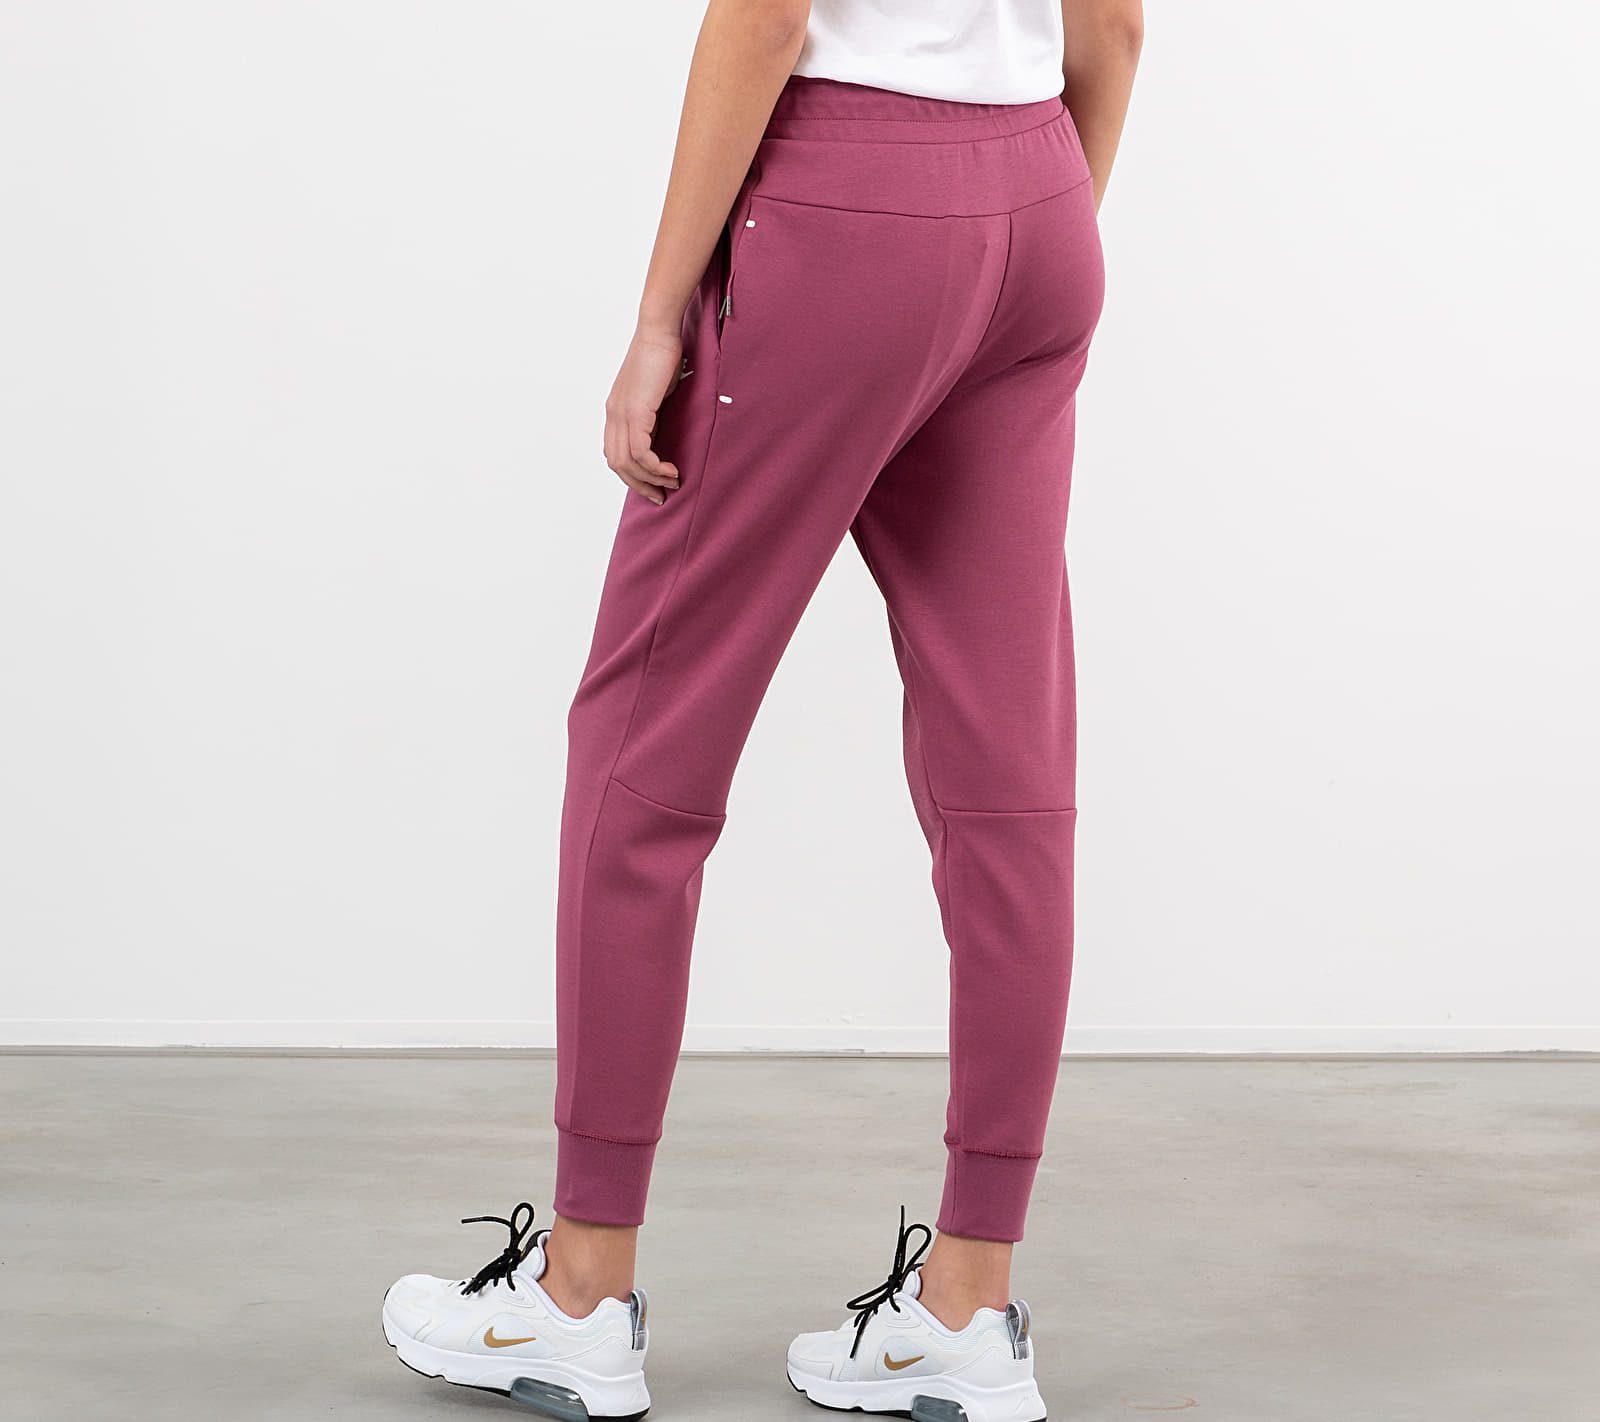 Nike Sportswear Tech Fleece Pants Mulberry Rose/ Mulberry Rose/ White, Pink